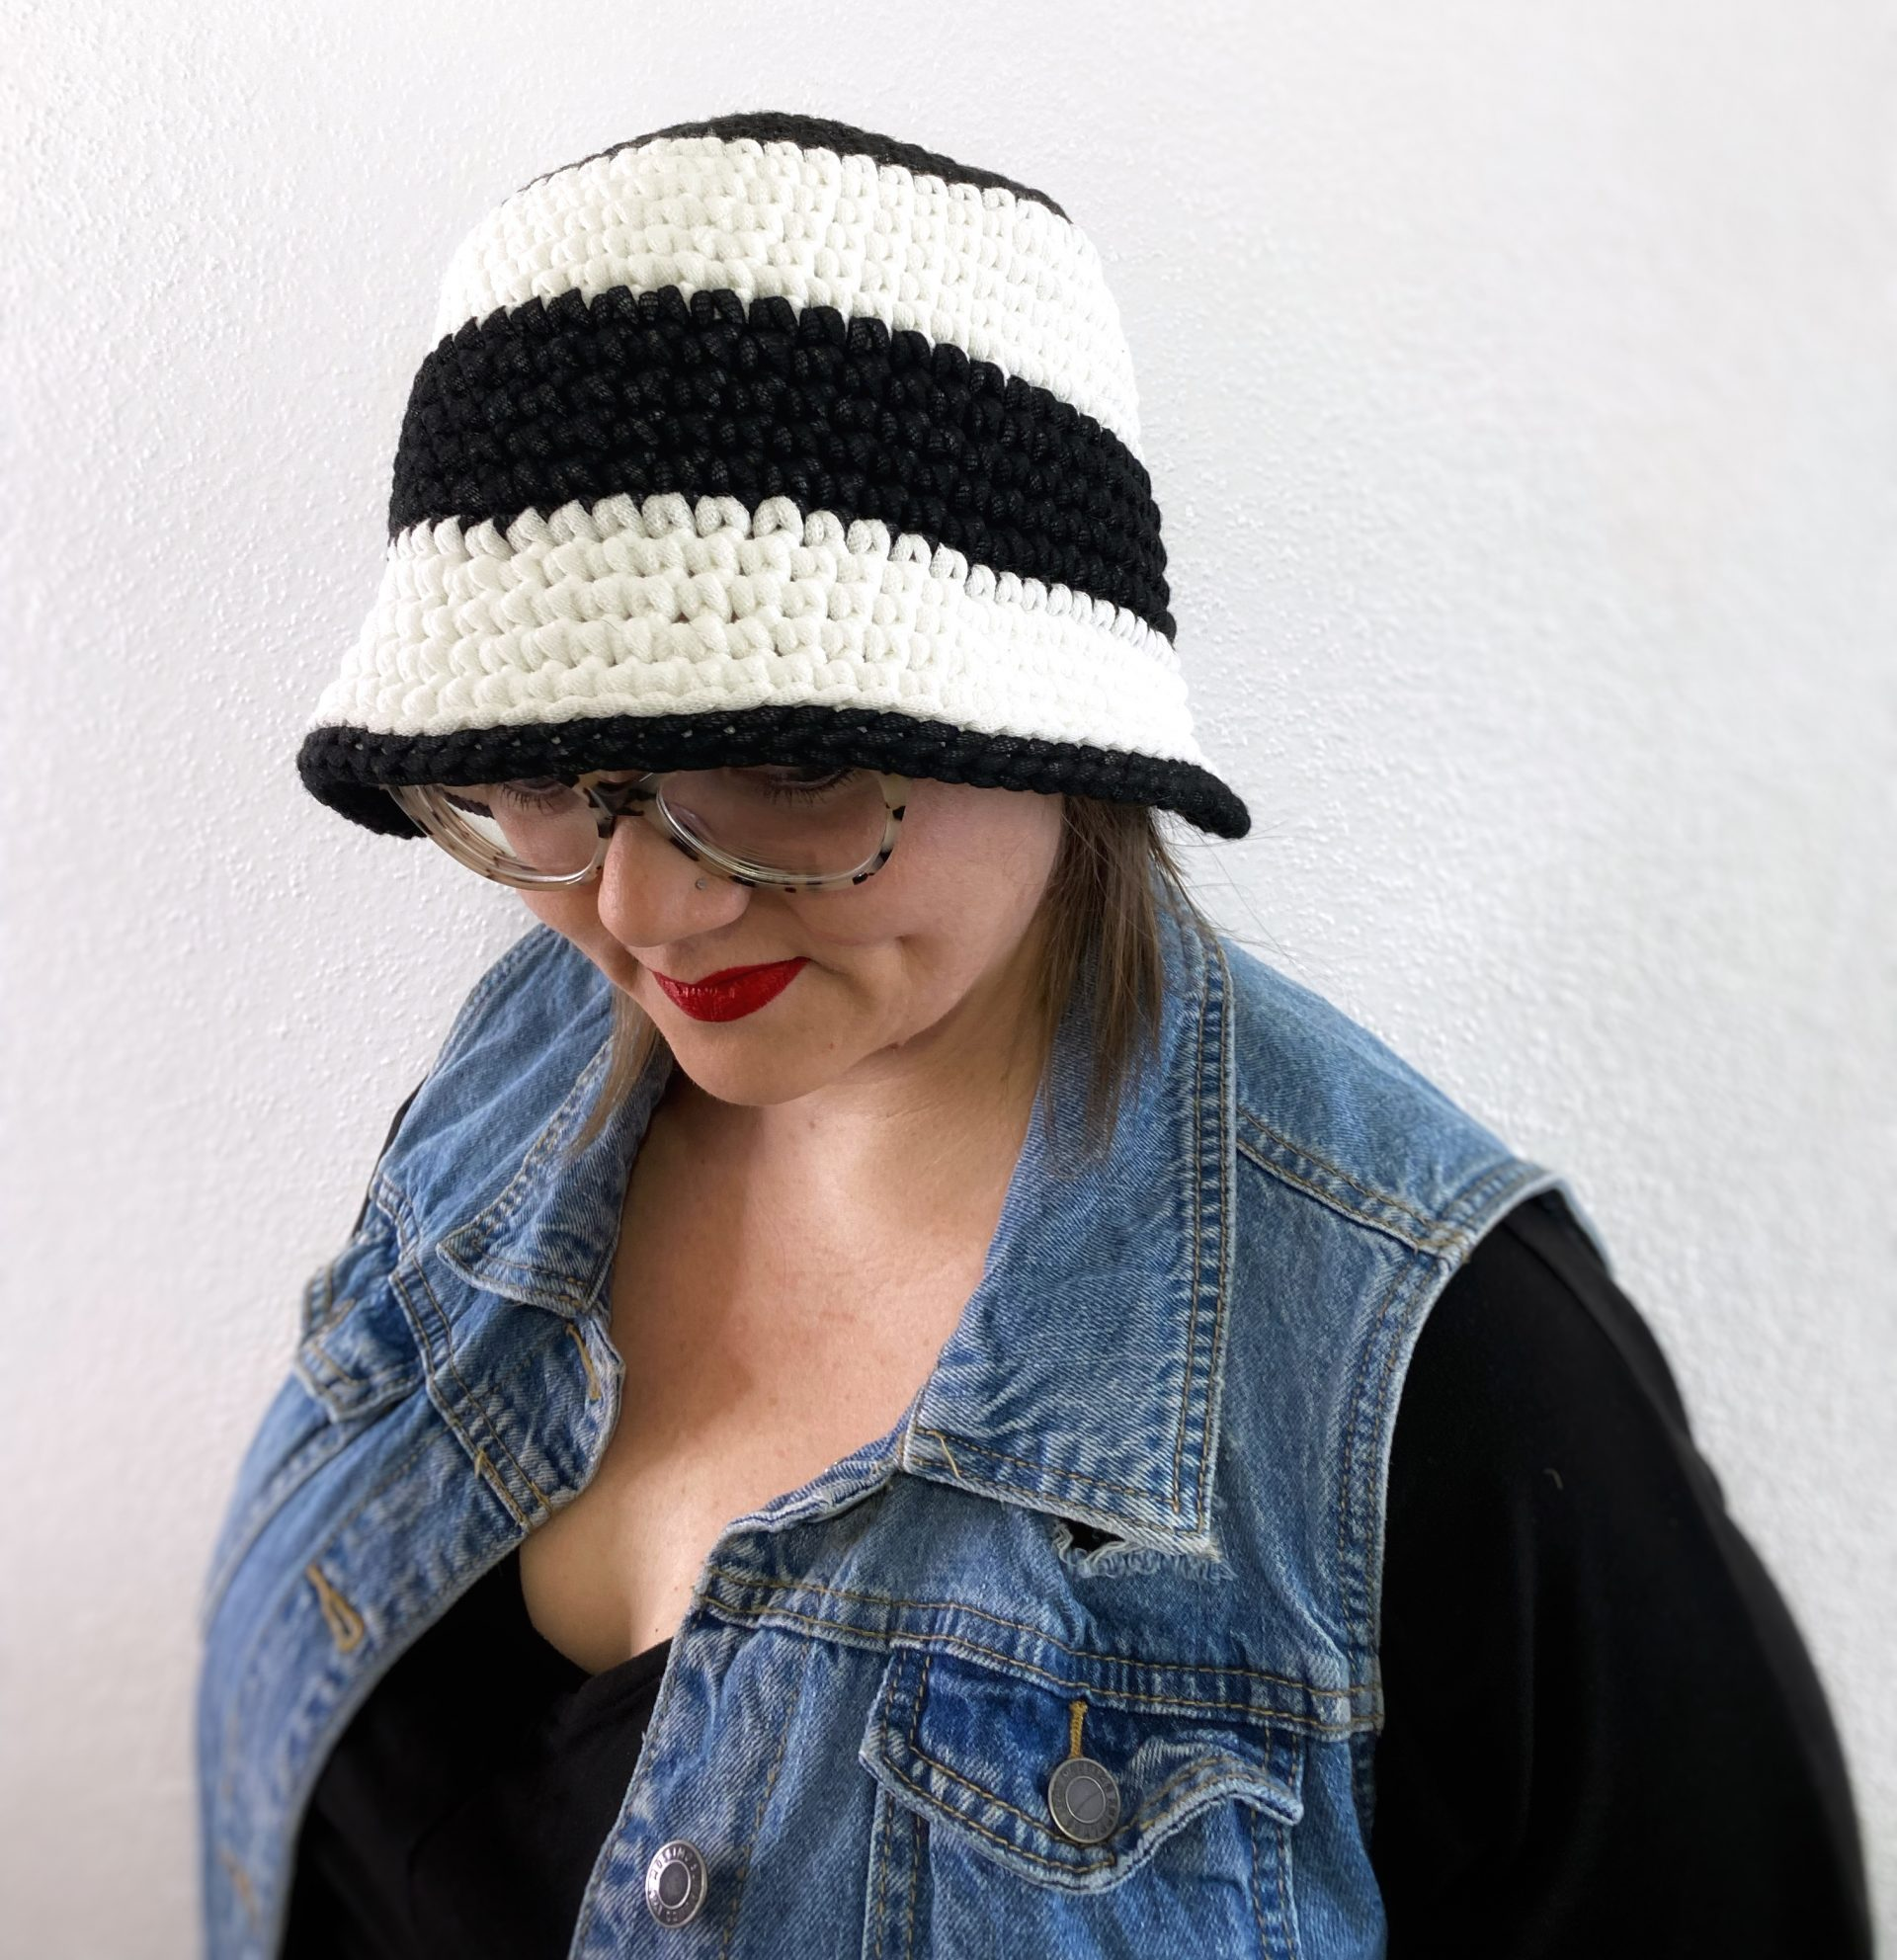 Lady wearing Bickett crochet bucket hat with levi vest and black top